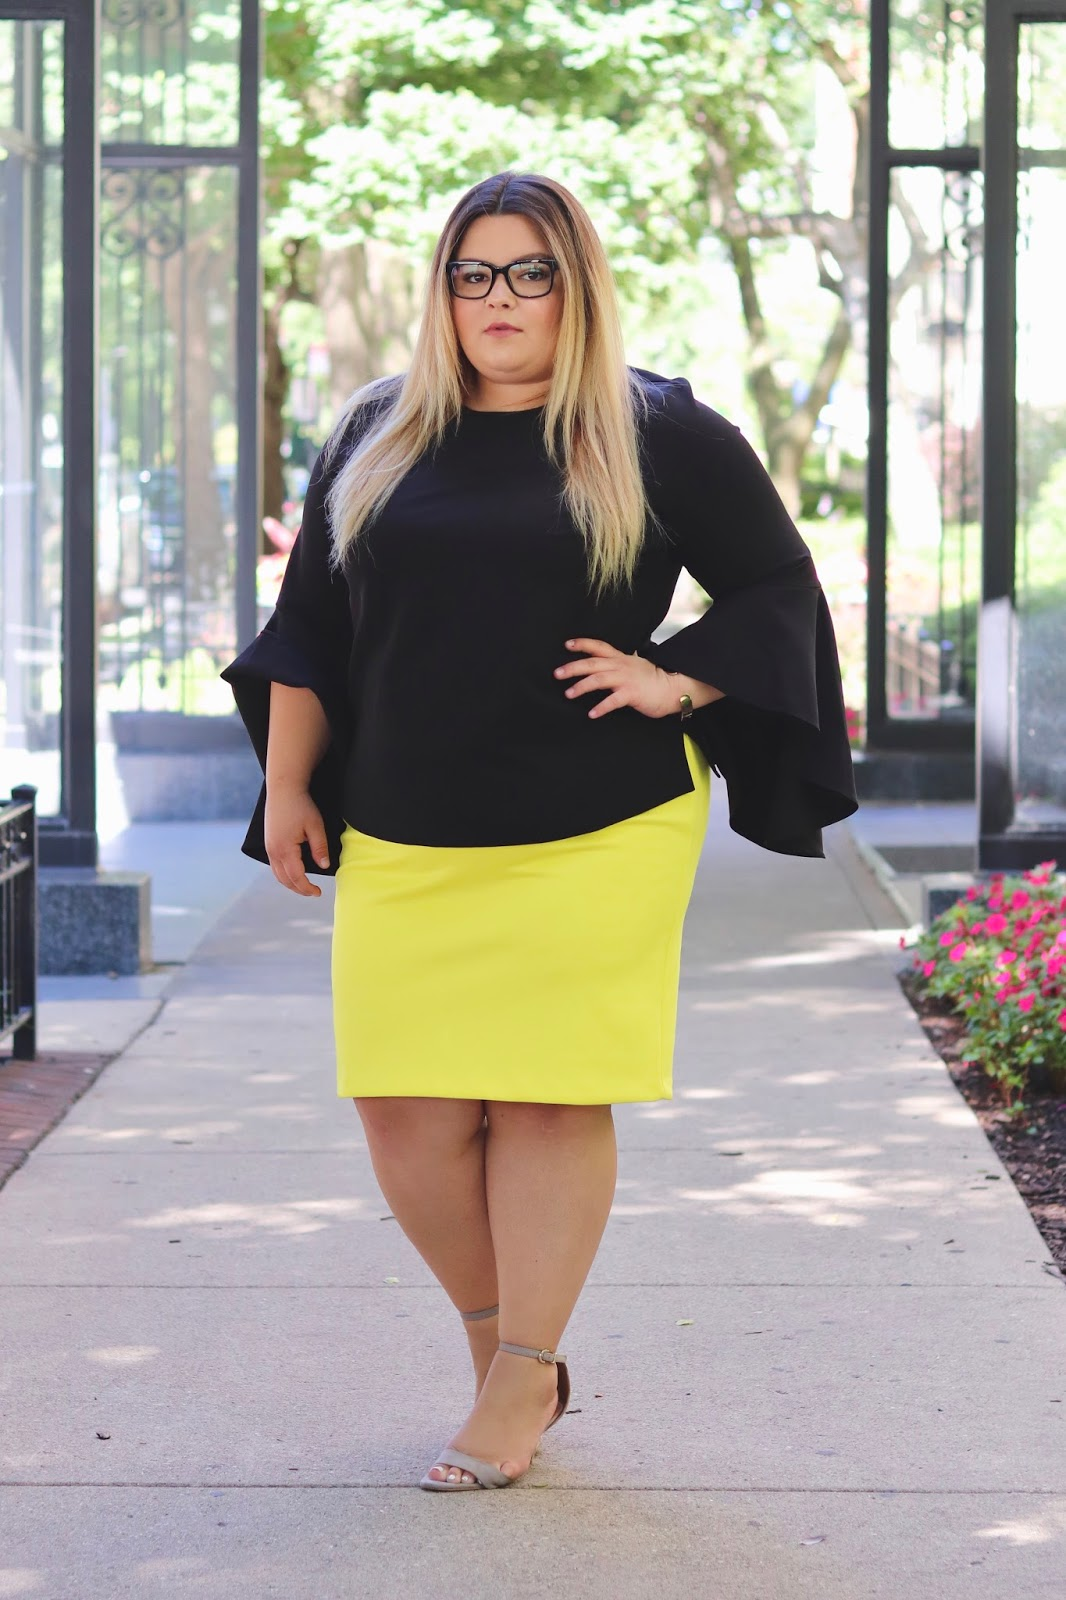 eloquii, chicago, Chicago fashion, natalie craig, natalie in the city, plus size office attire, plus size professional attire, plus size fashion blogger, affordable plus size fashion, eloquii Chicago, curves and confidence, midwest, plus size neoprene, blogger review